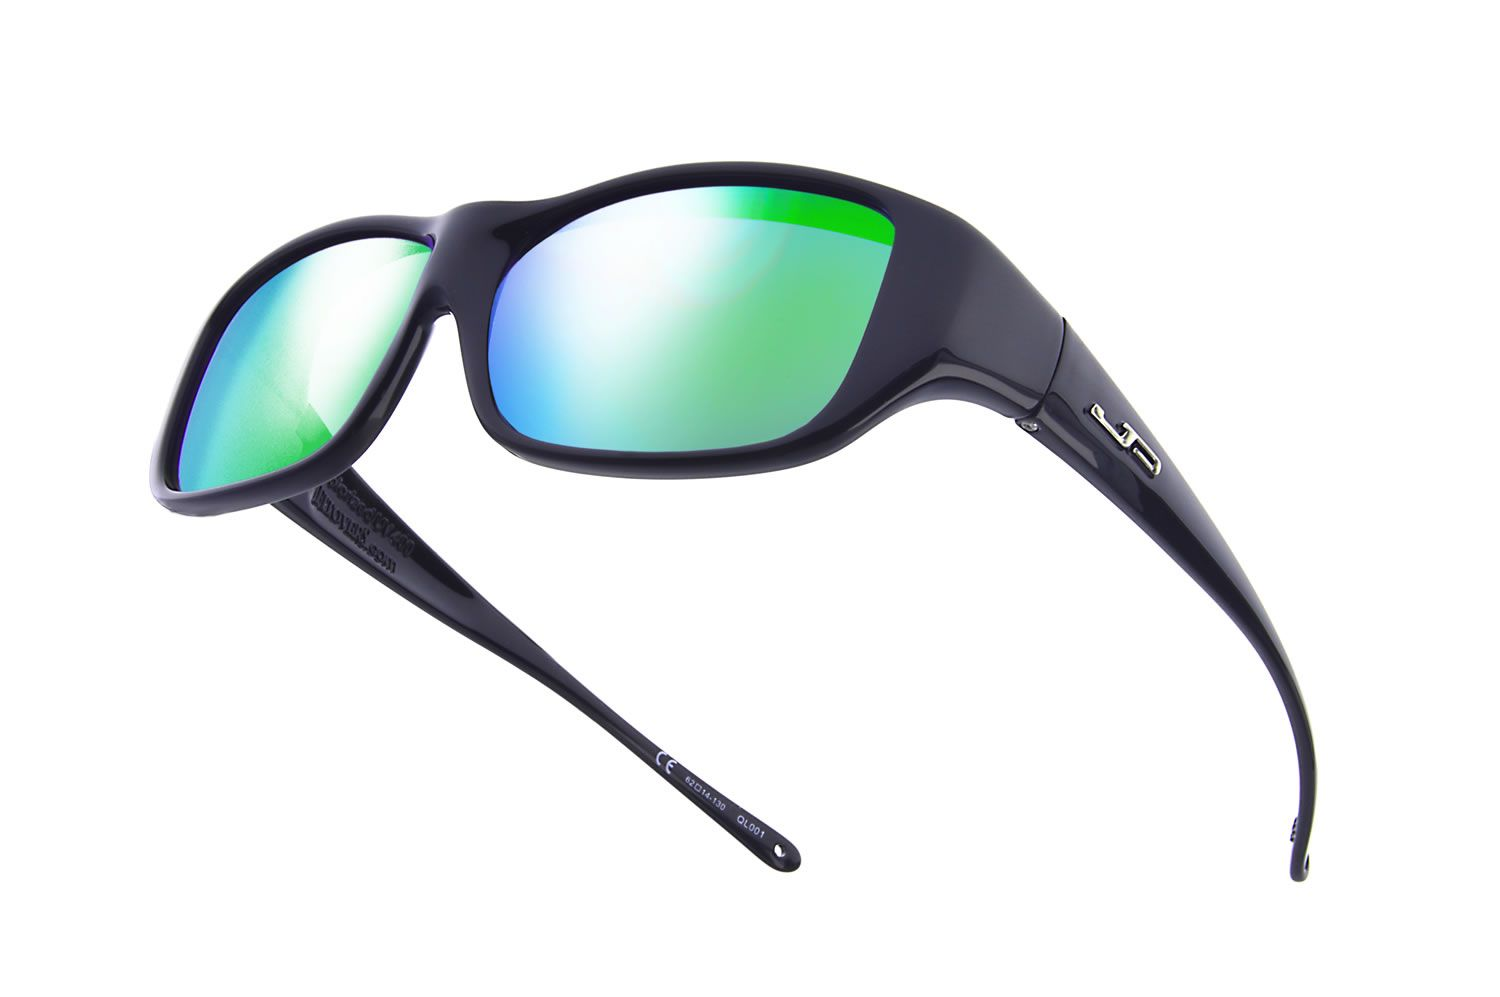 71f28d1f63 Quamby™ Eternal Black (Green Mirror) - the Fashionable Jonathan Paul® Fitovers  Eyewear